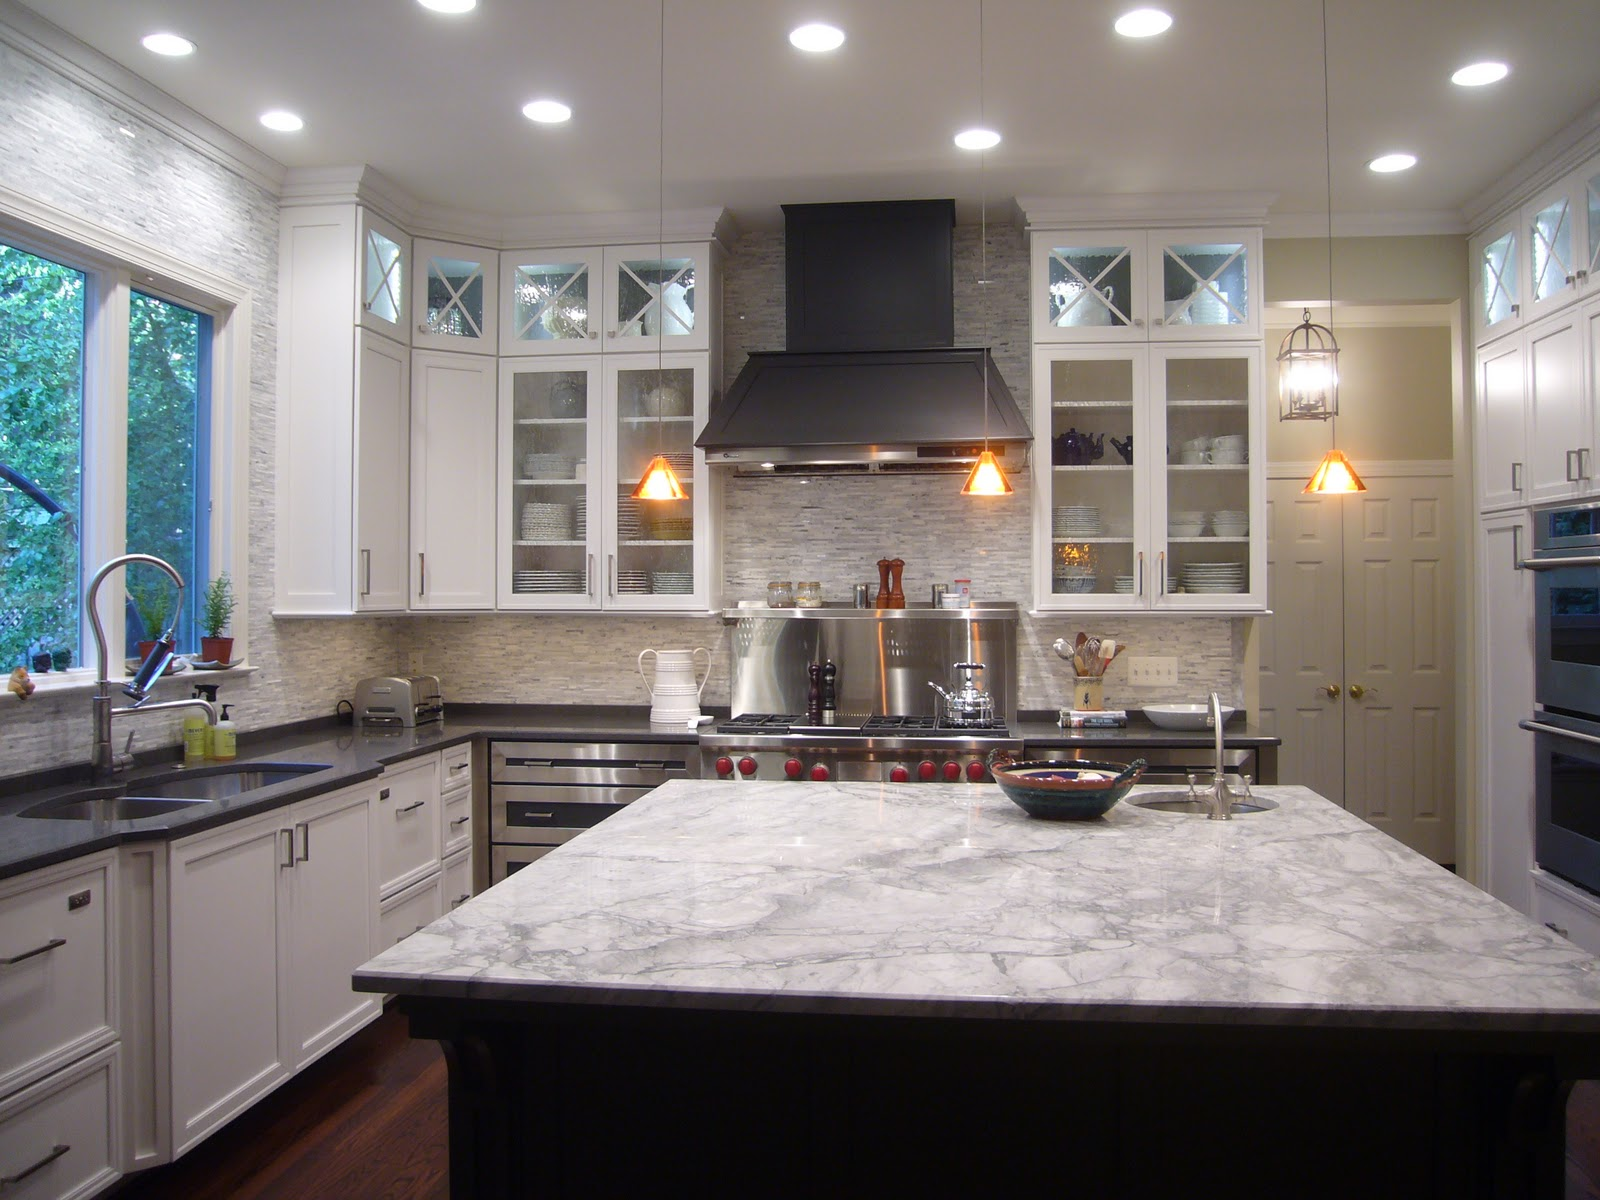 engineered quartz surfacing, for the perimeter cabinetry counter tops